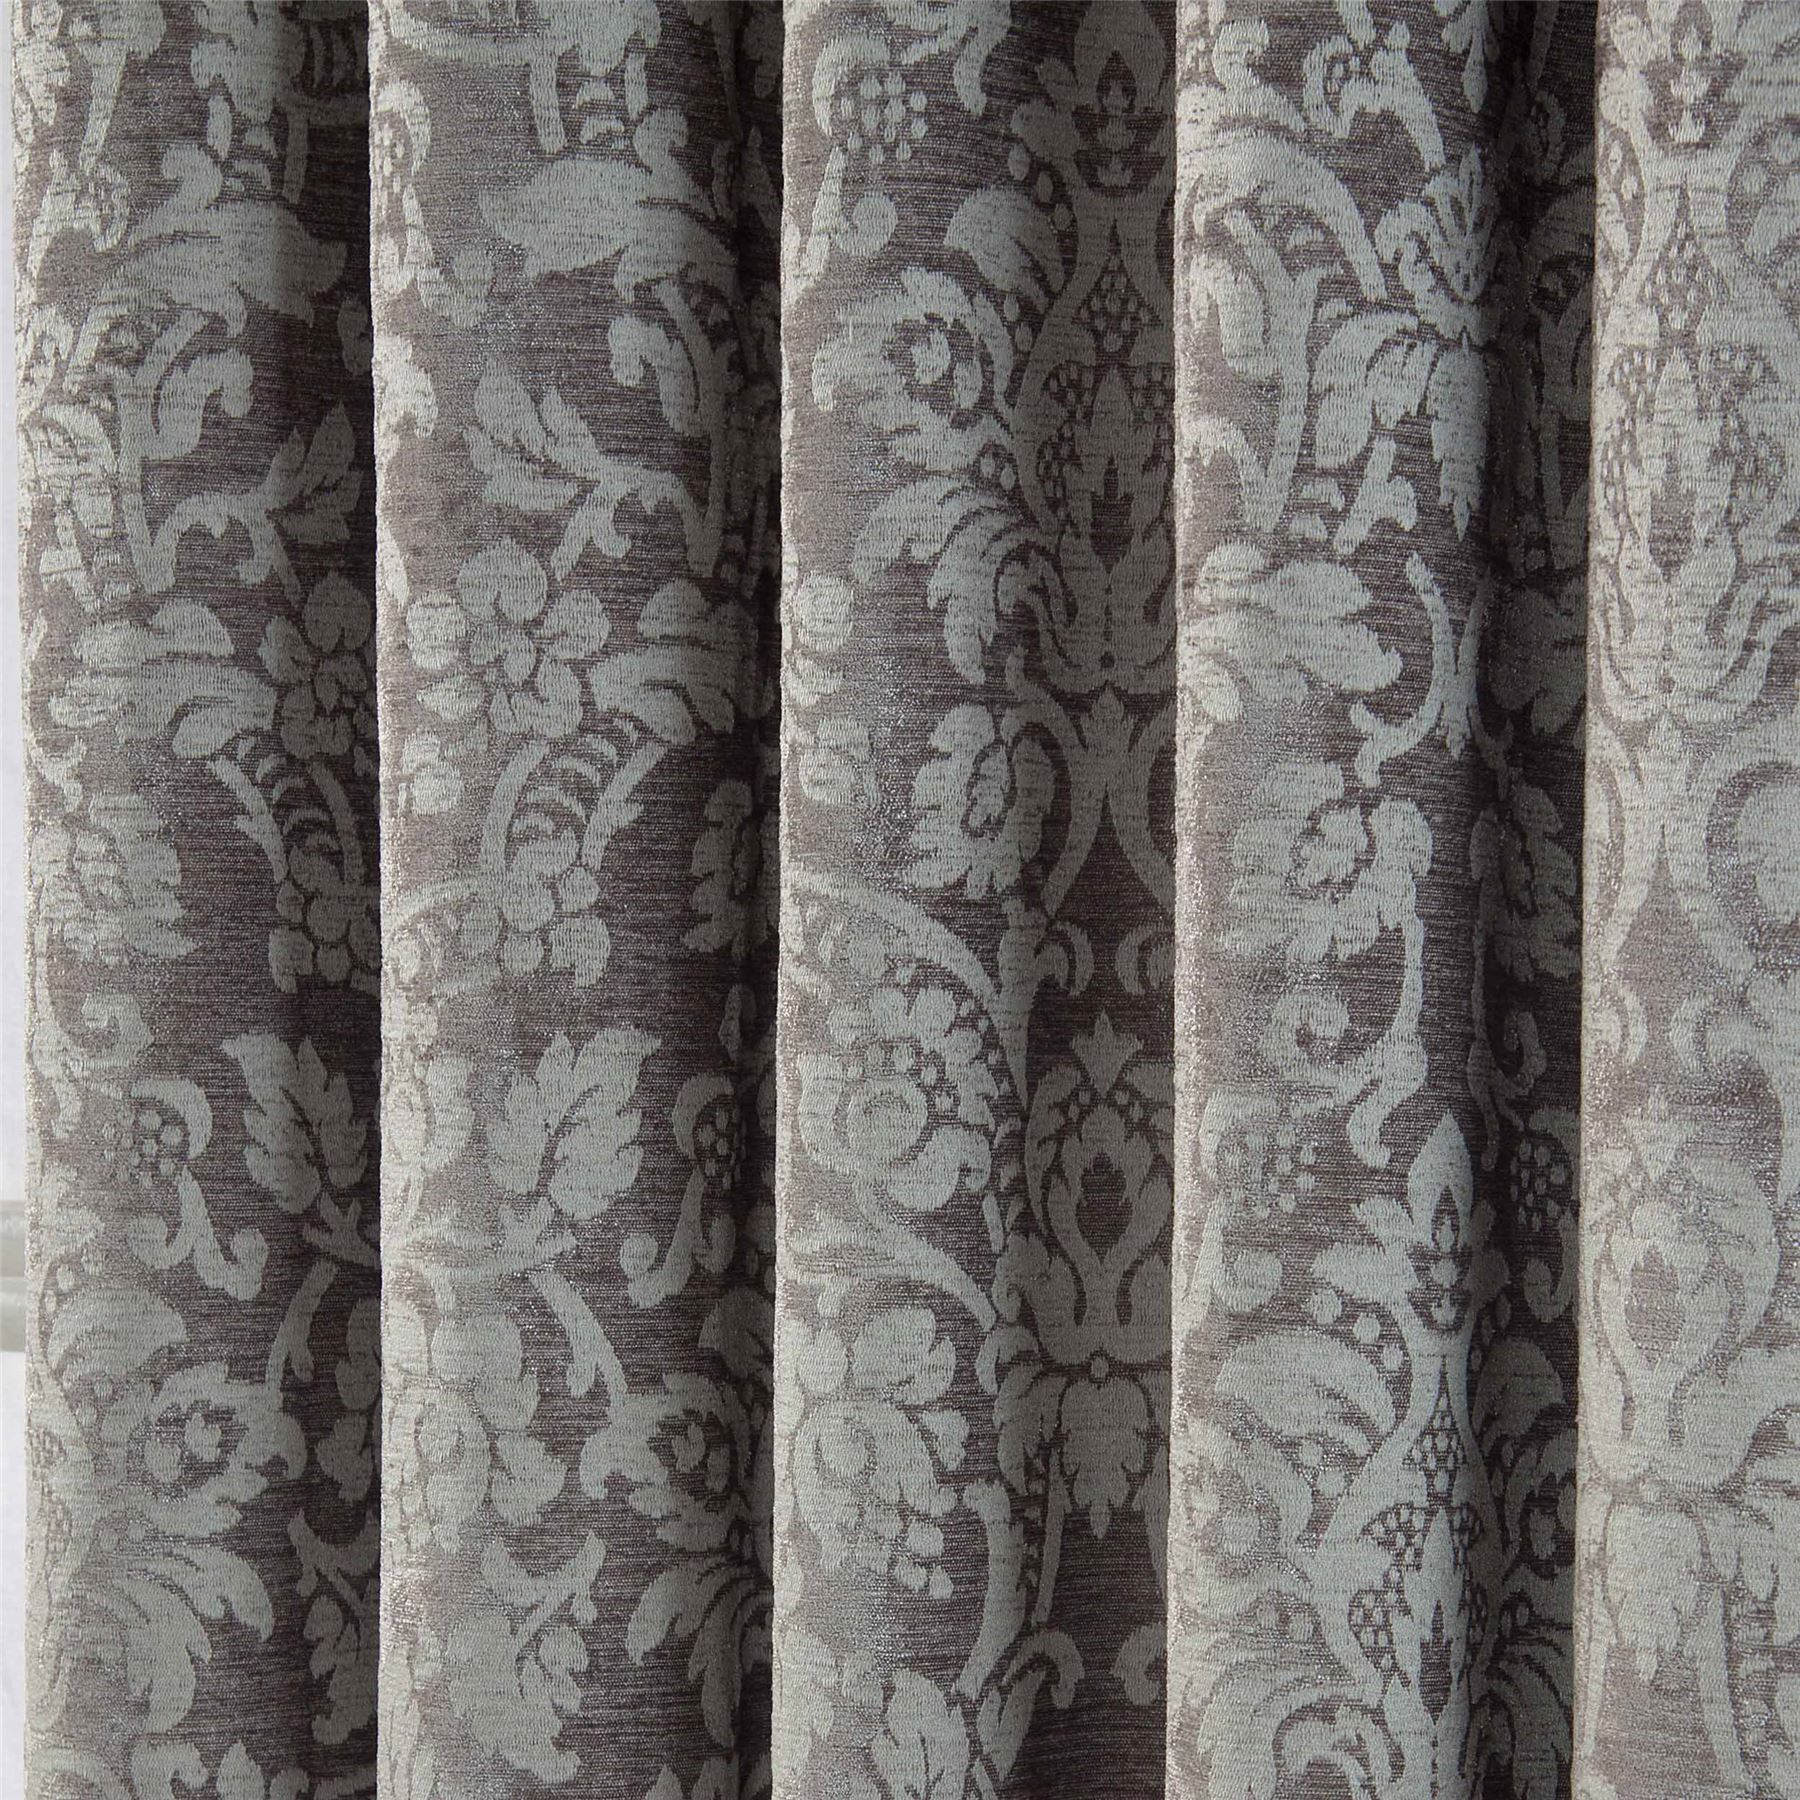 Velvet Jacquard Pencil Pleat Lined Ready Made Curtains Pair Grey - Ready made curtains white